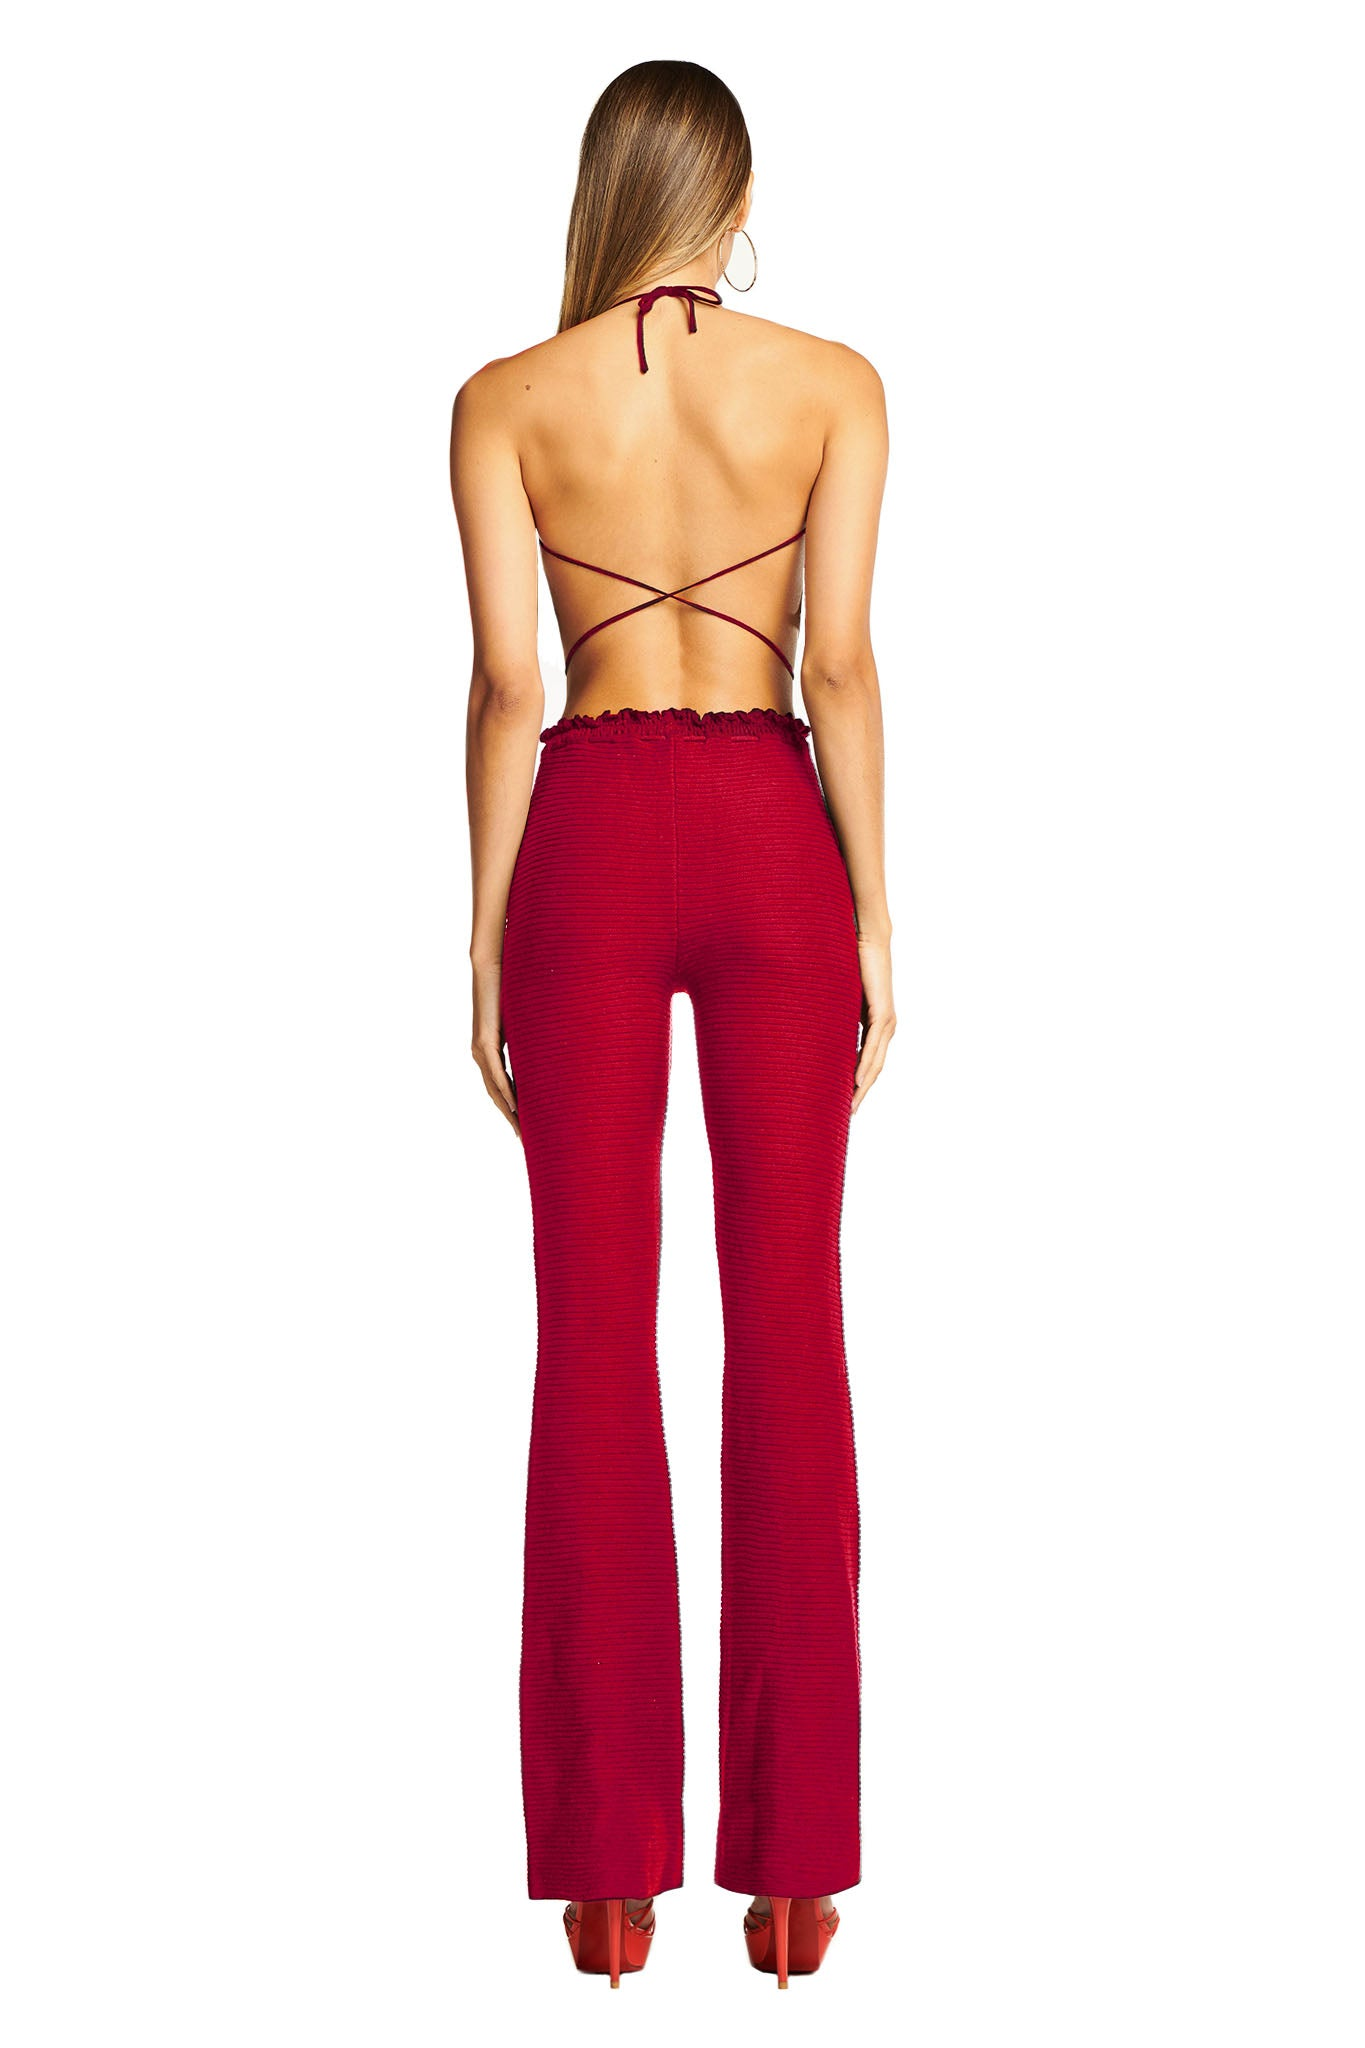 SAVANNAH PANT - RED